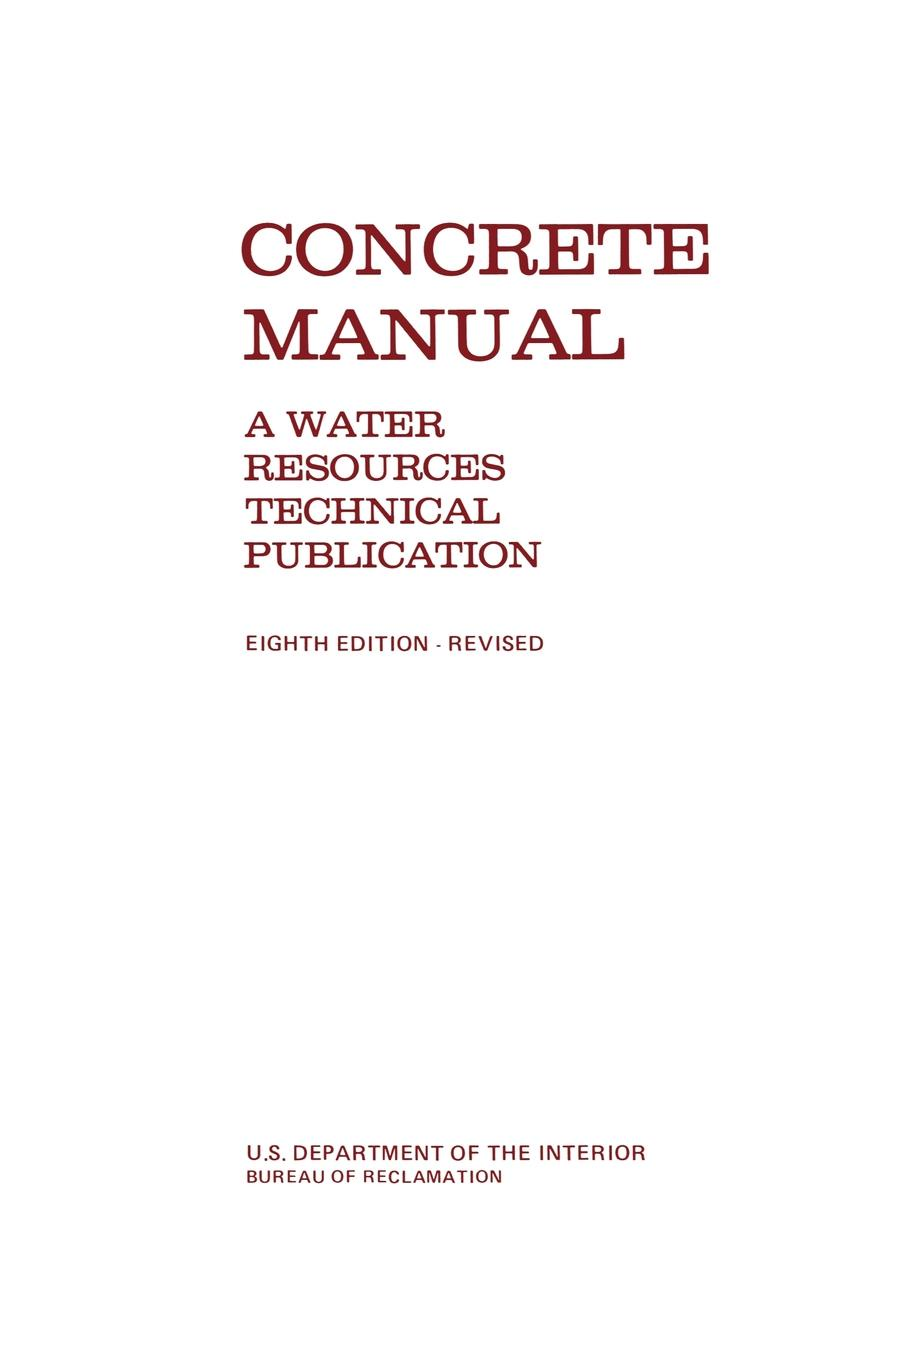 лучшая цена Bureau of Reclamation, U.S. Department of the Interior Concrete Manual. A Manual for the Control of Concrete Construction (A Water Resources Technical Publication series, Eighth edition)